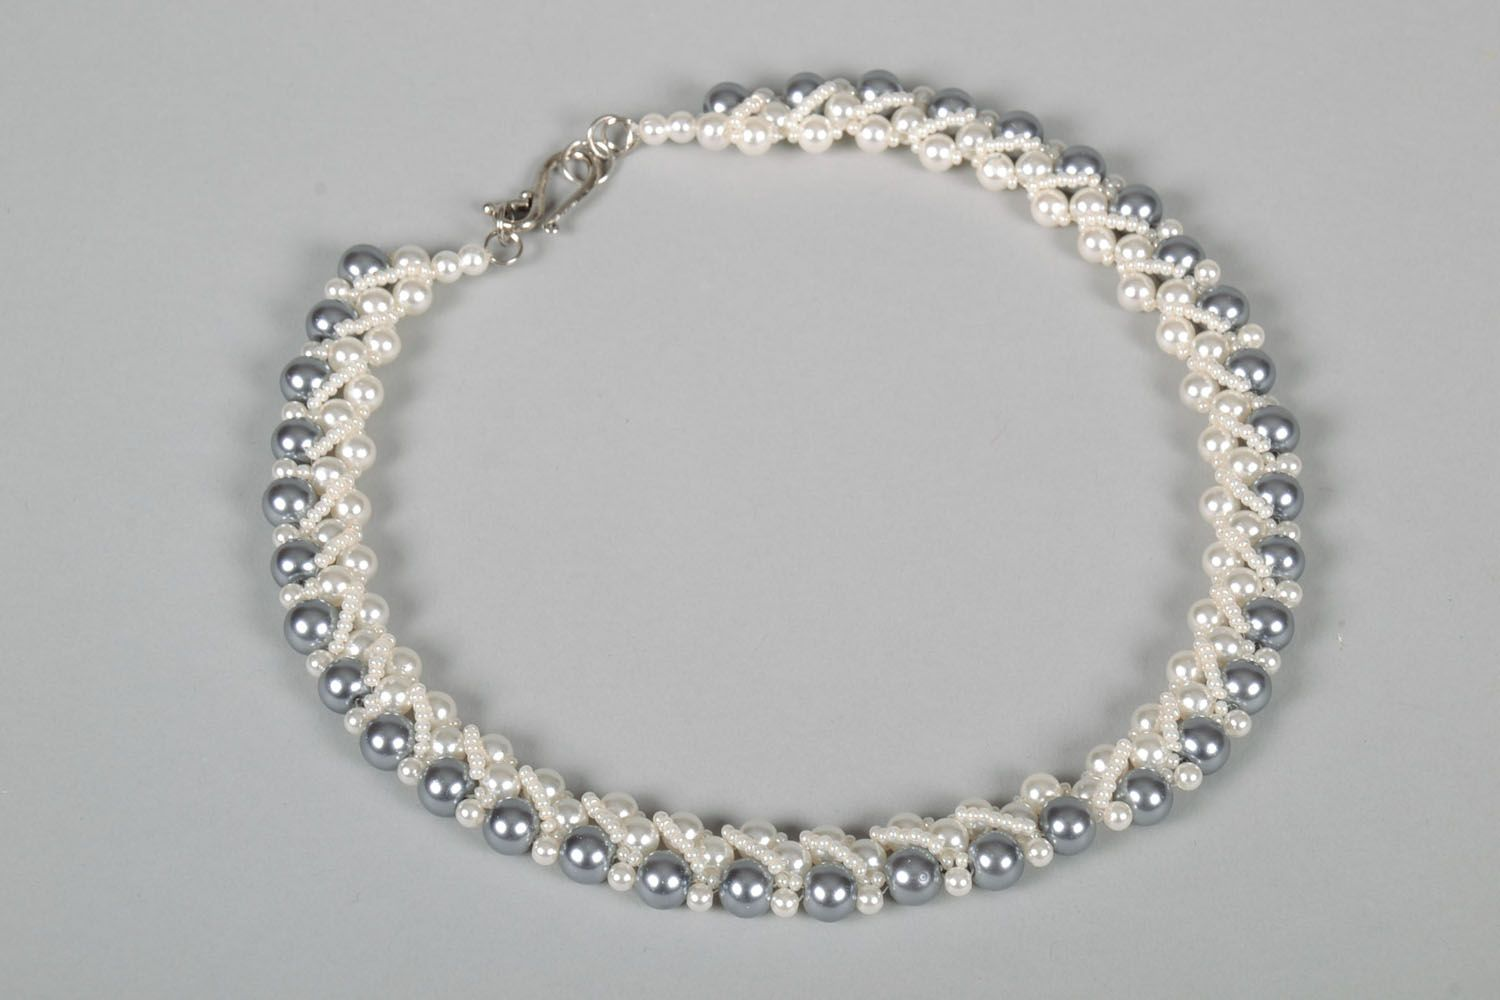 Necklace with artificial pearls photo 3